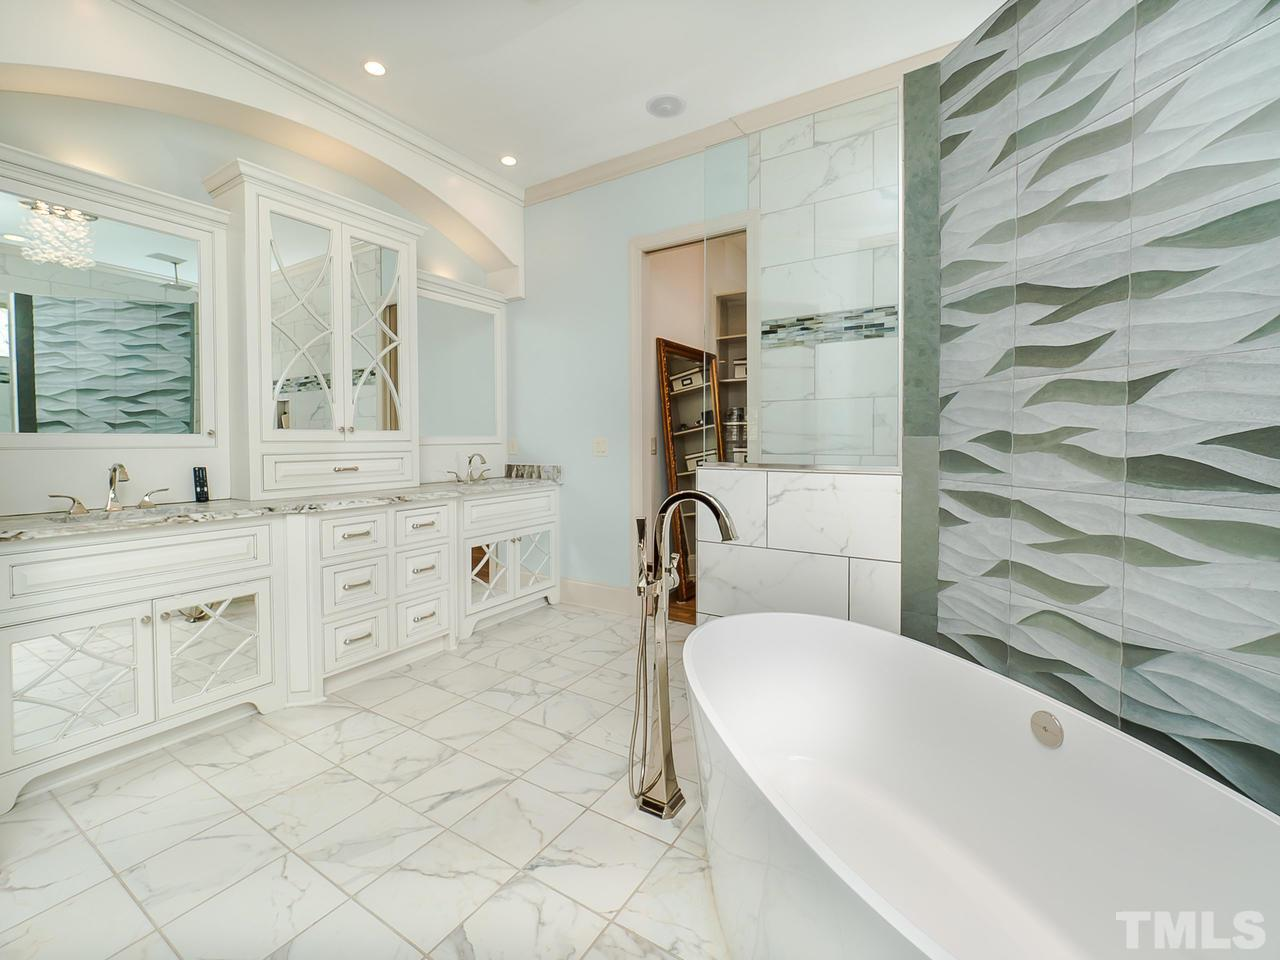 Gorgeous! Stunning custom cabinetry, custom tile feature wall, double walk-through shower and free-standing volcanic, Victoria+Albert tub. TV hidden behind mirror for viewing while getting ready or relaxing in your tub.